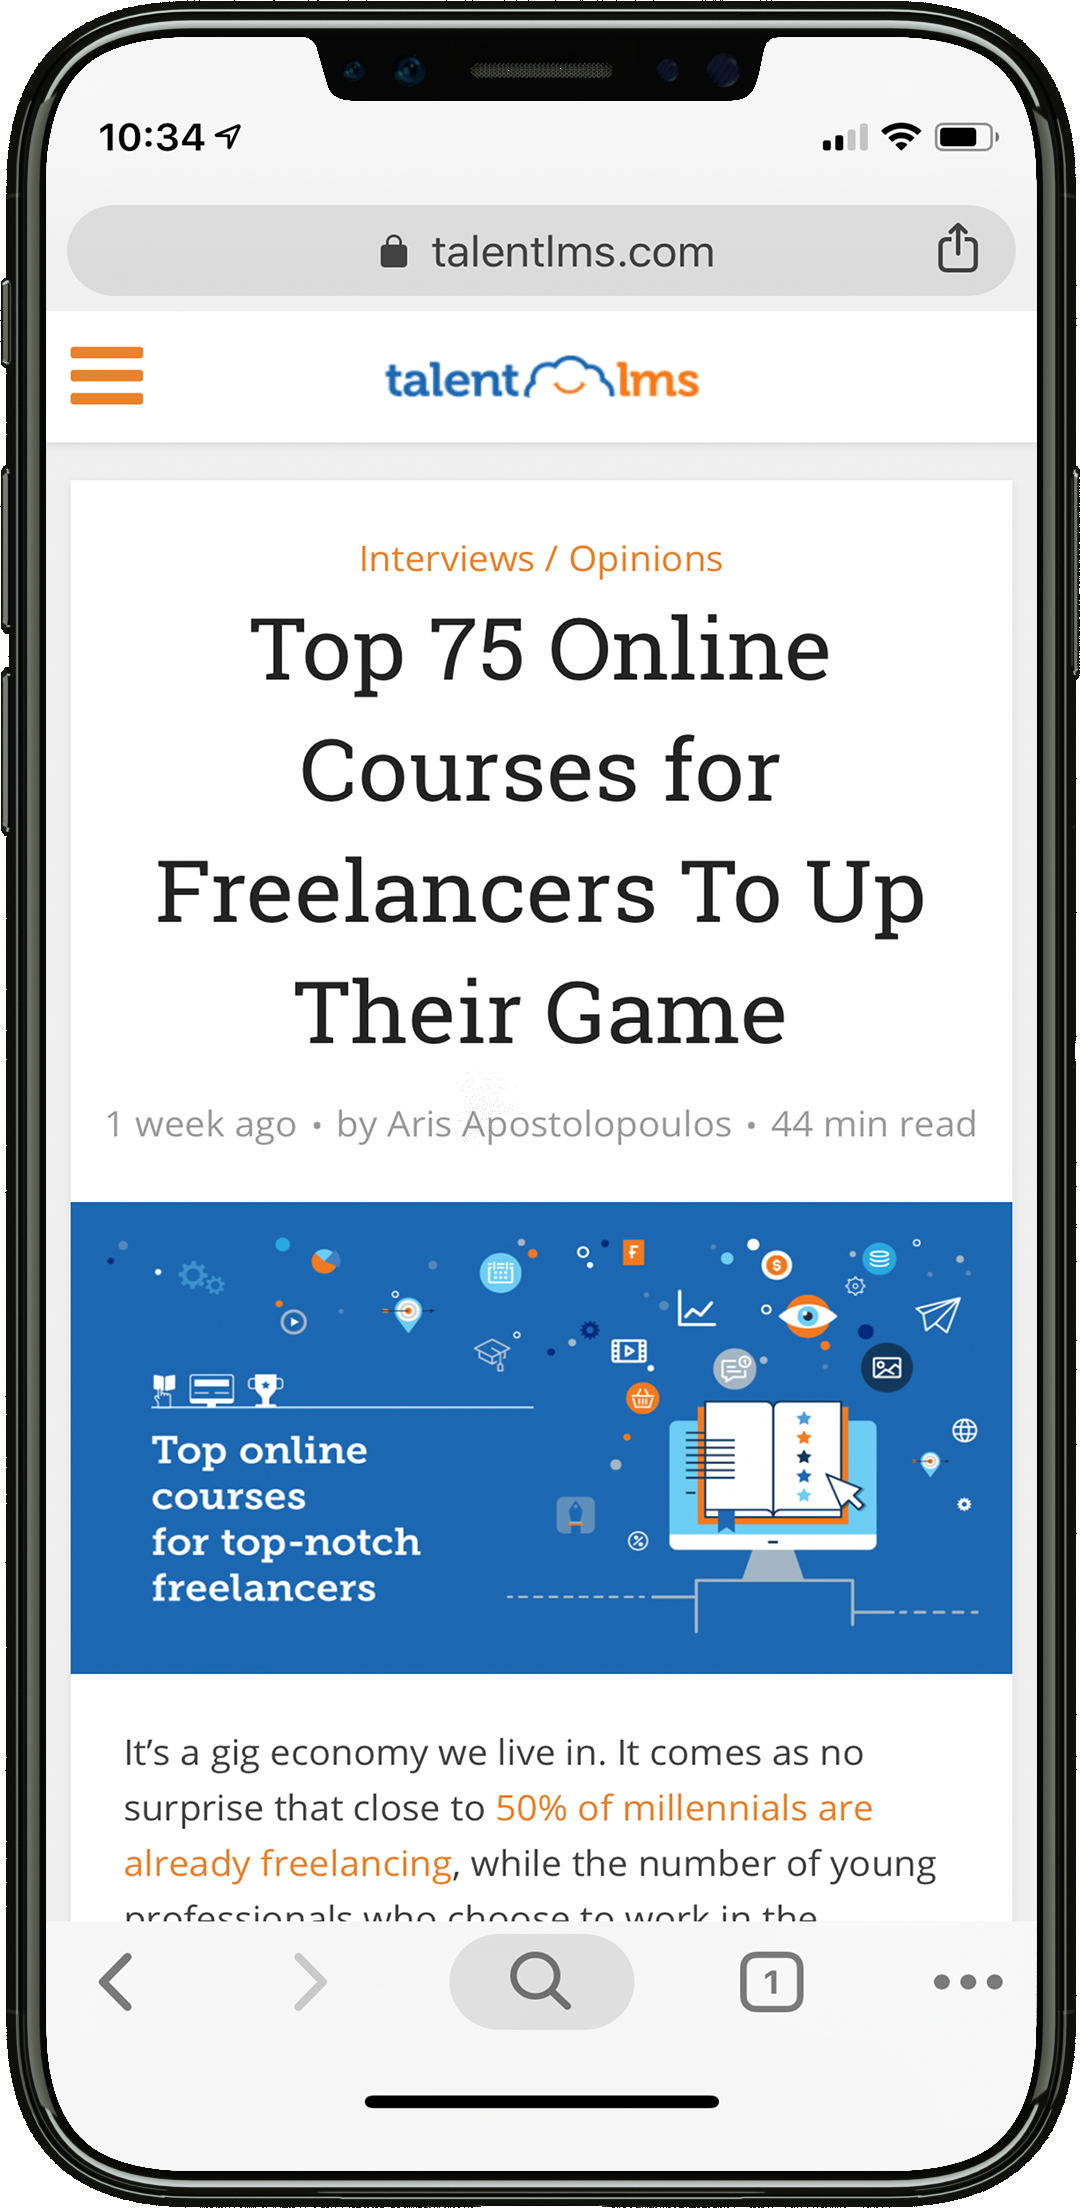 iPhone mockup online courses